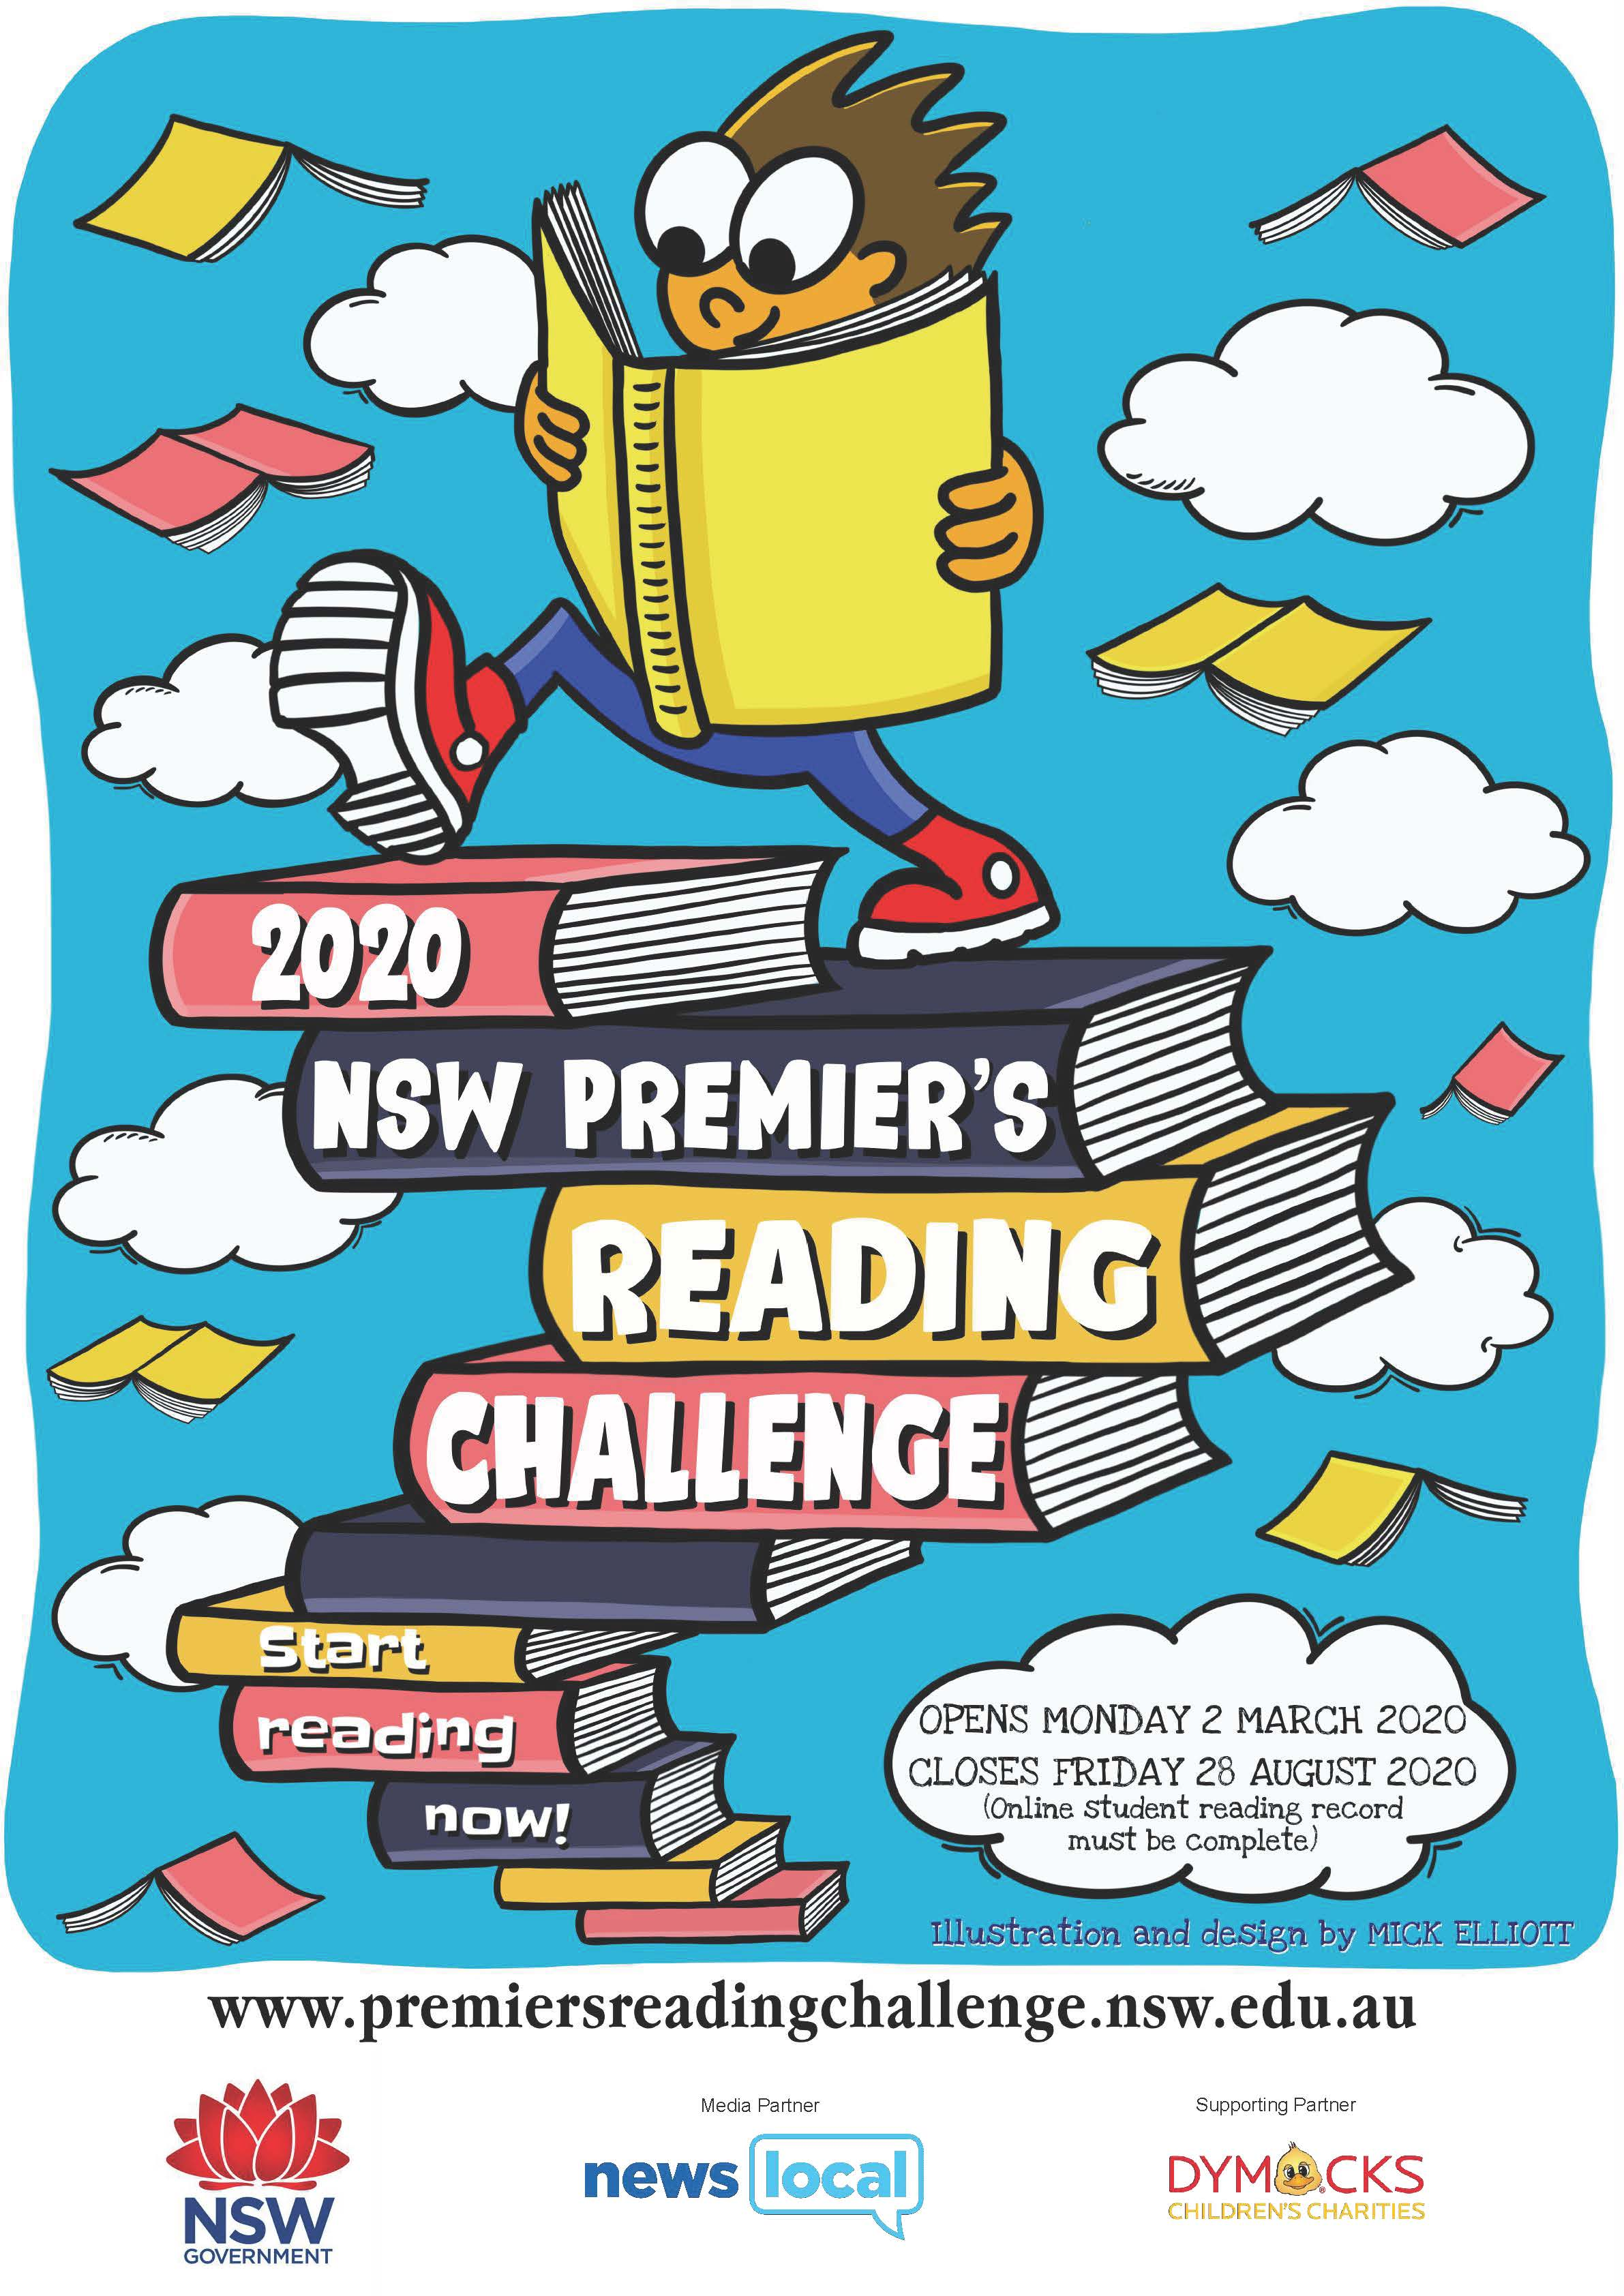 premiers reading challenge poster with picture of a cartoon figure climbing a staircase of books